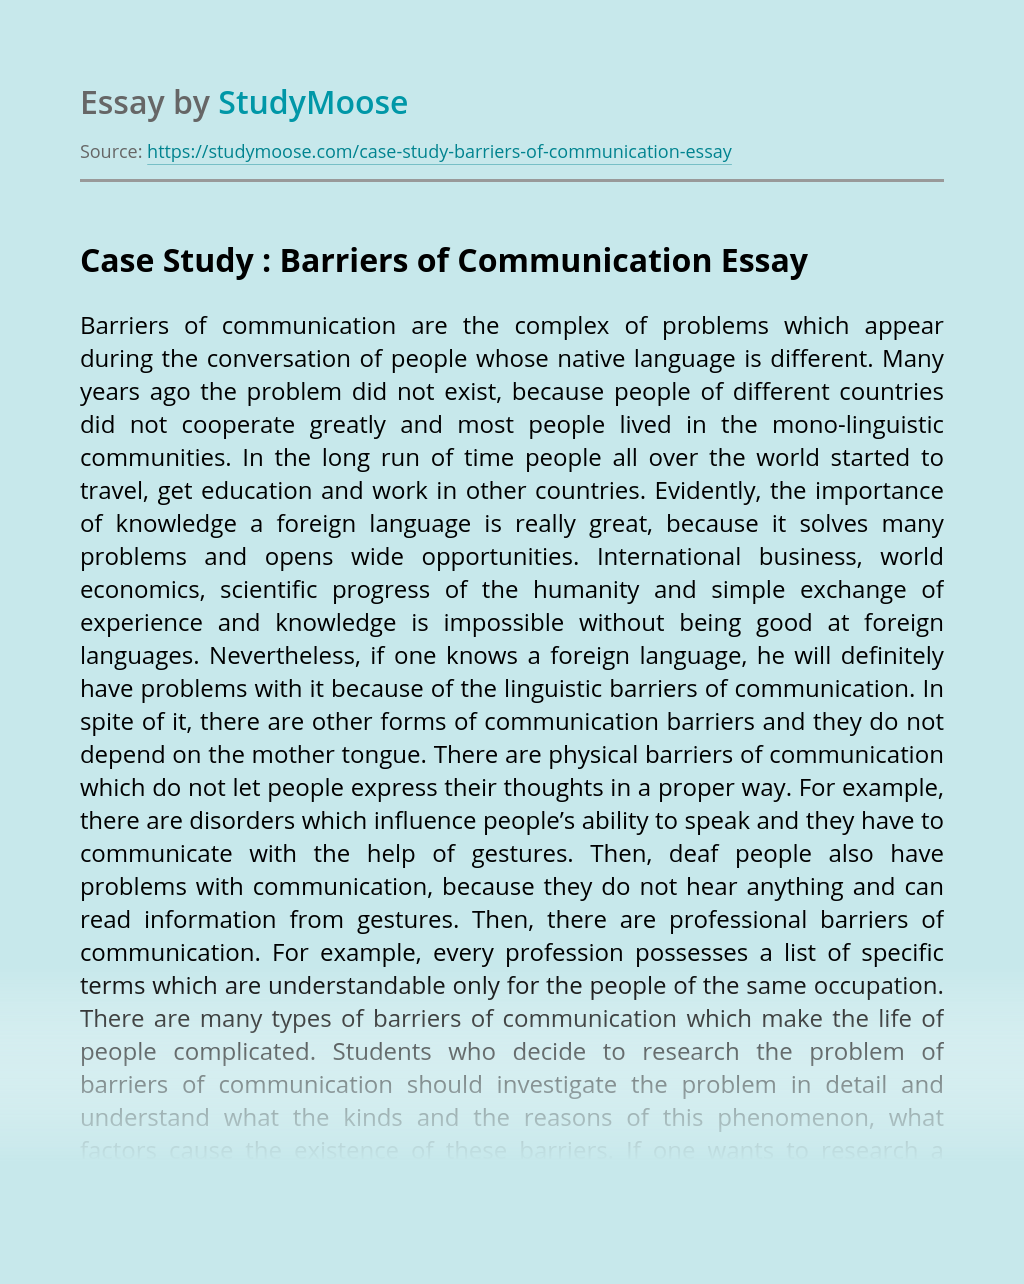 Case Study : Barriers of Communication